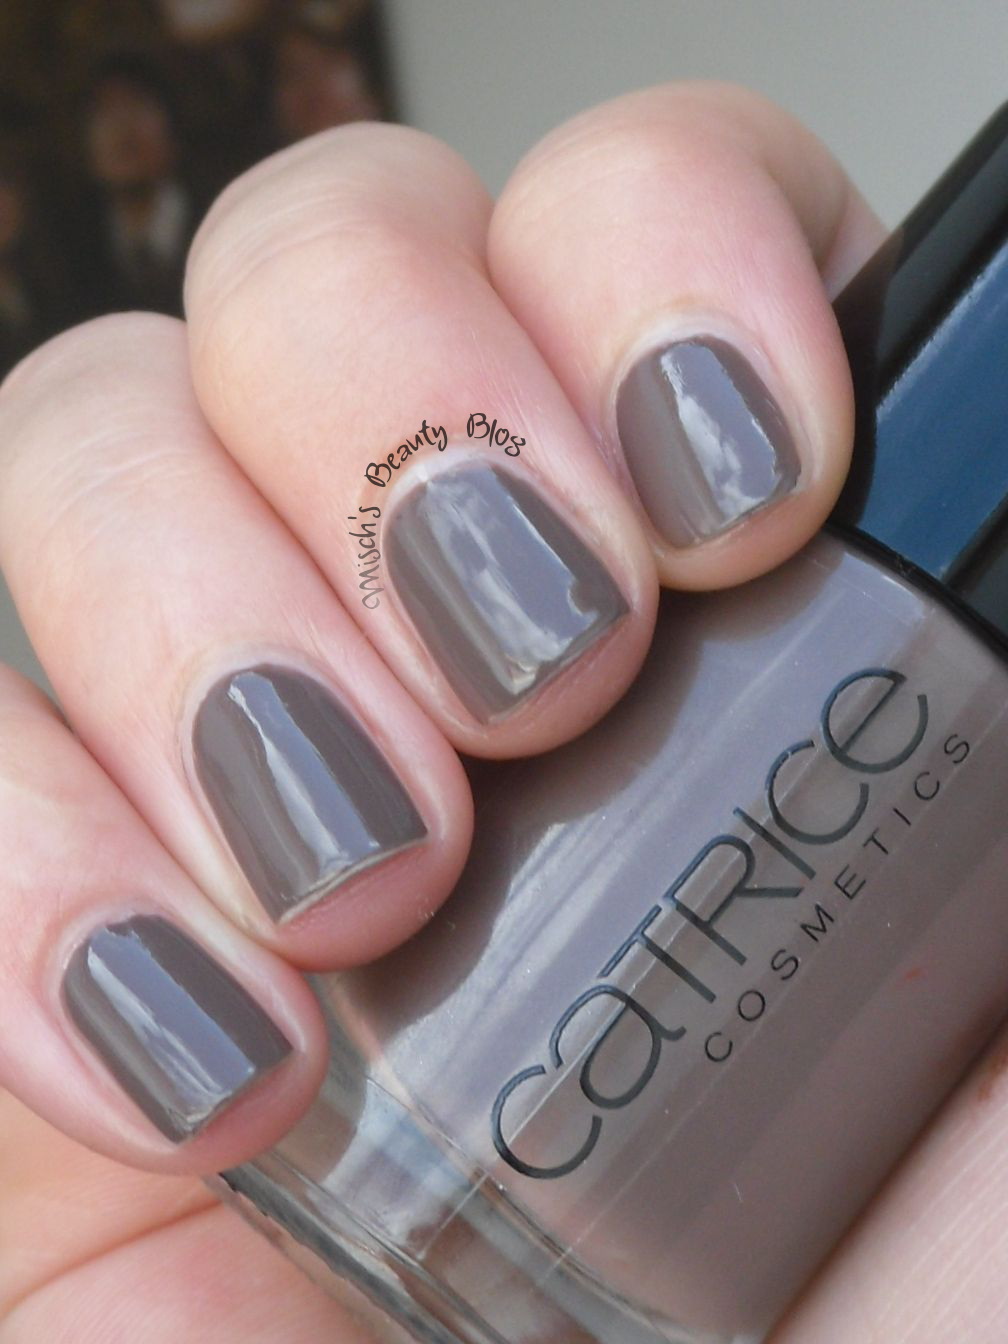 Misch 39 s beauty blog notd august 31st catrice lost in mud for What does taupe mean